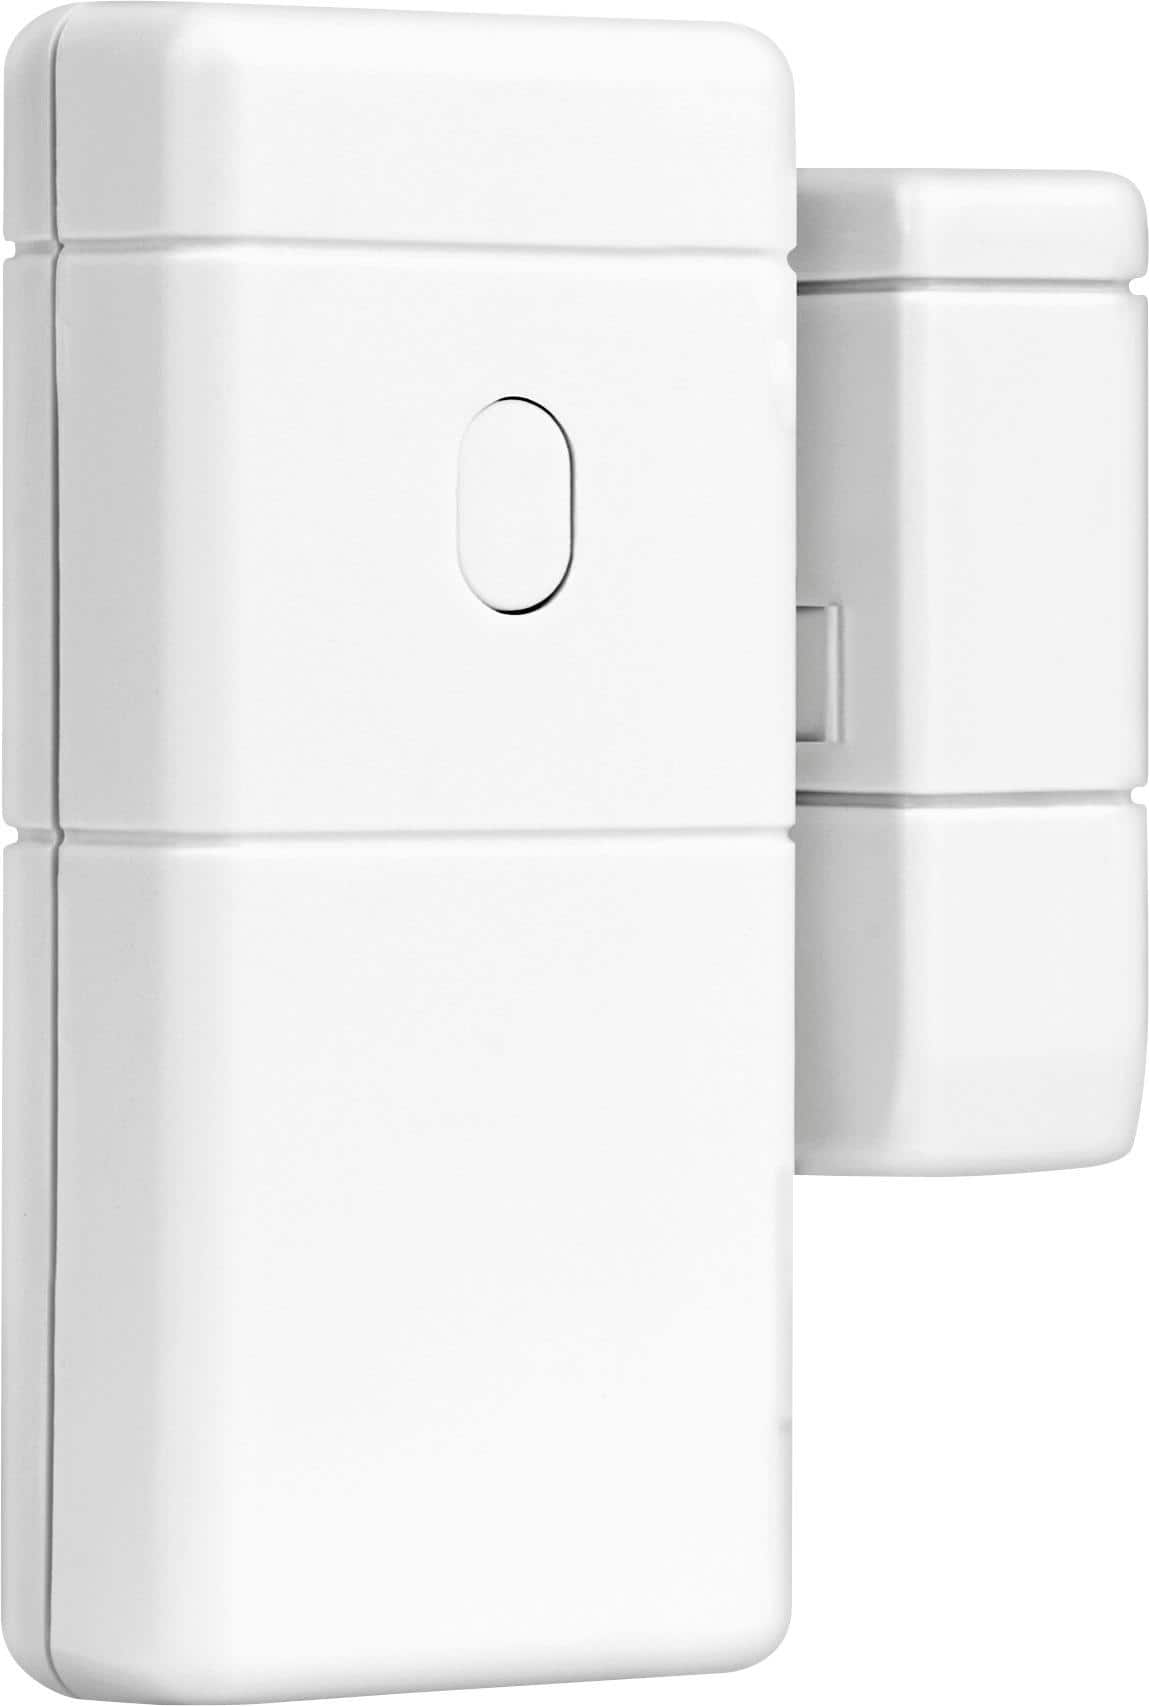 Samsung SmartThings ADT Wireless Smart Door and Windows Sensor